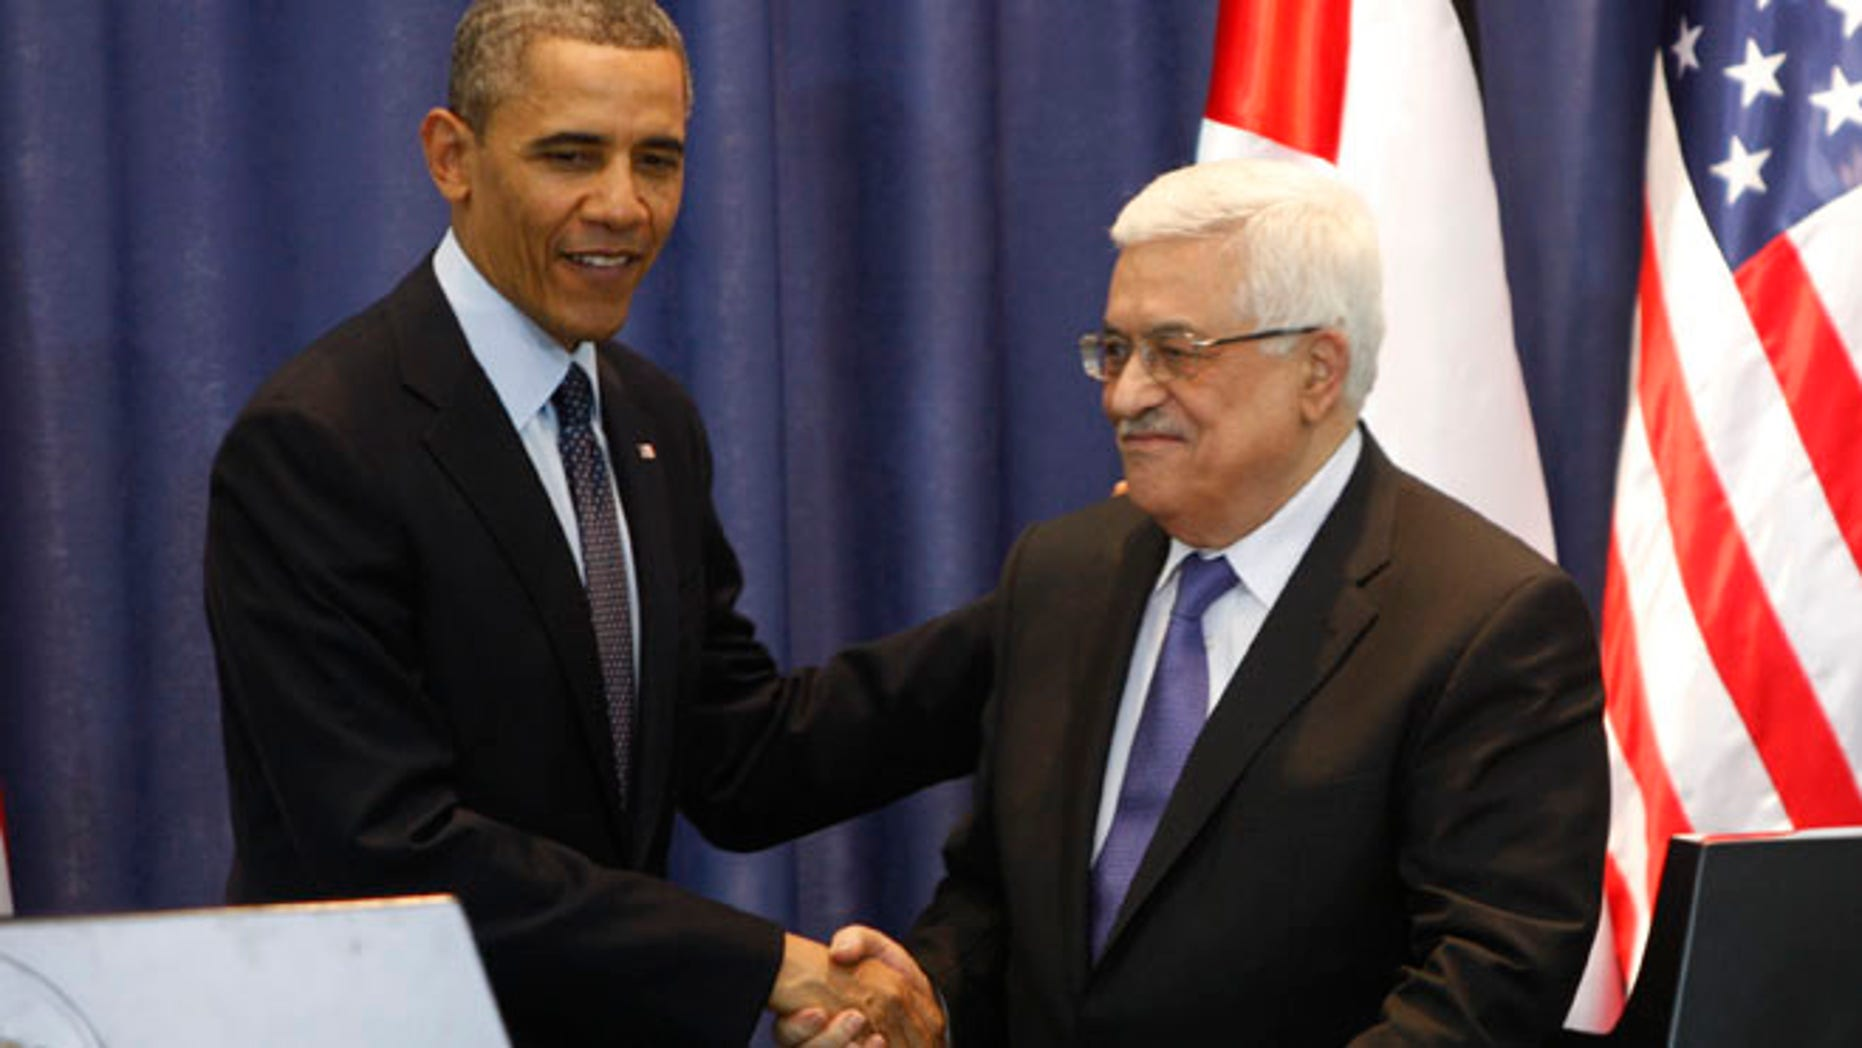 March. 21, 2013: US President Barack Obama, left, shakes hands with Palestinian President Mahmoud Abbas during a joint press conference in the West Bank city of Ramallah. Obama on Thursday urged Israelis and Palestinians to get back to peace talks but offered no new ideas on how they might do so, essentially abandoning his previous support of the Palestinian demand for Israel to halt settlement activity before negotiations resume.